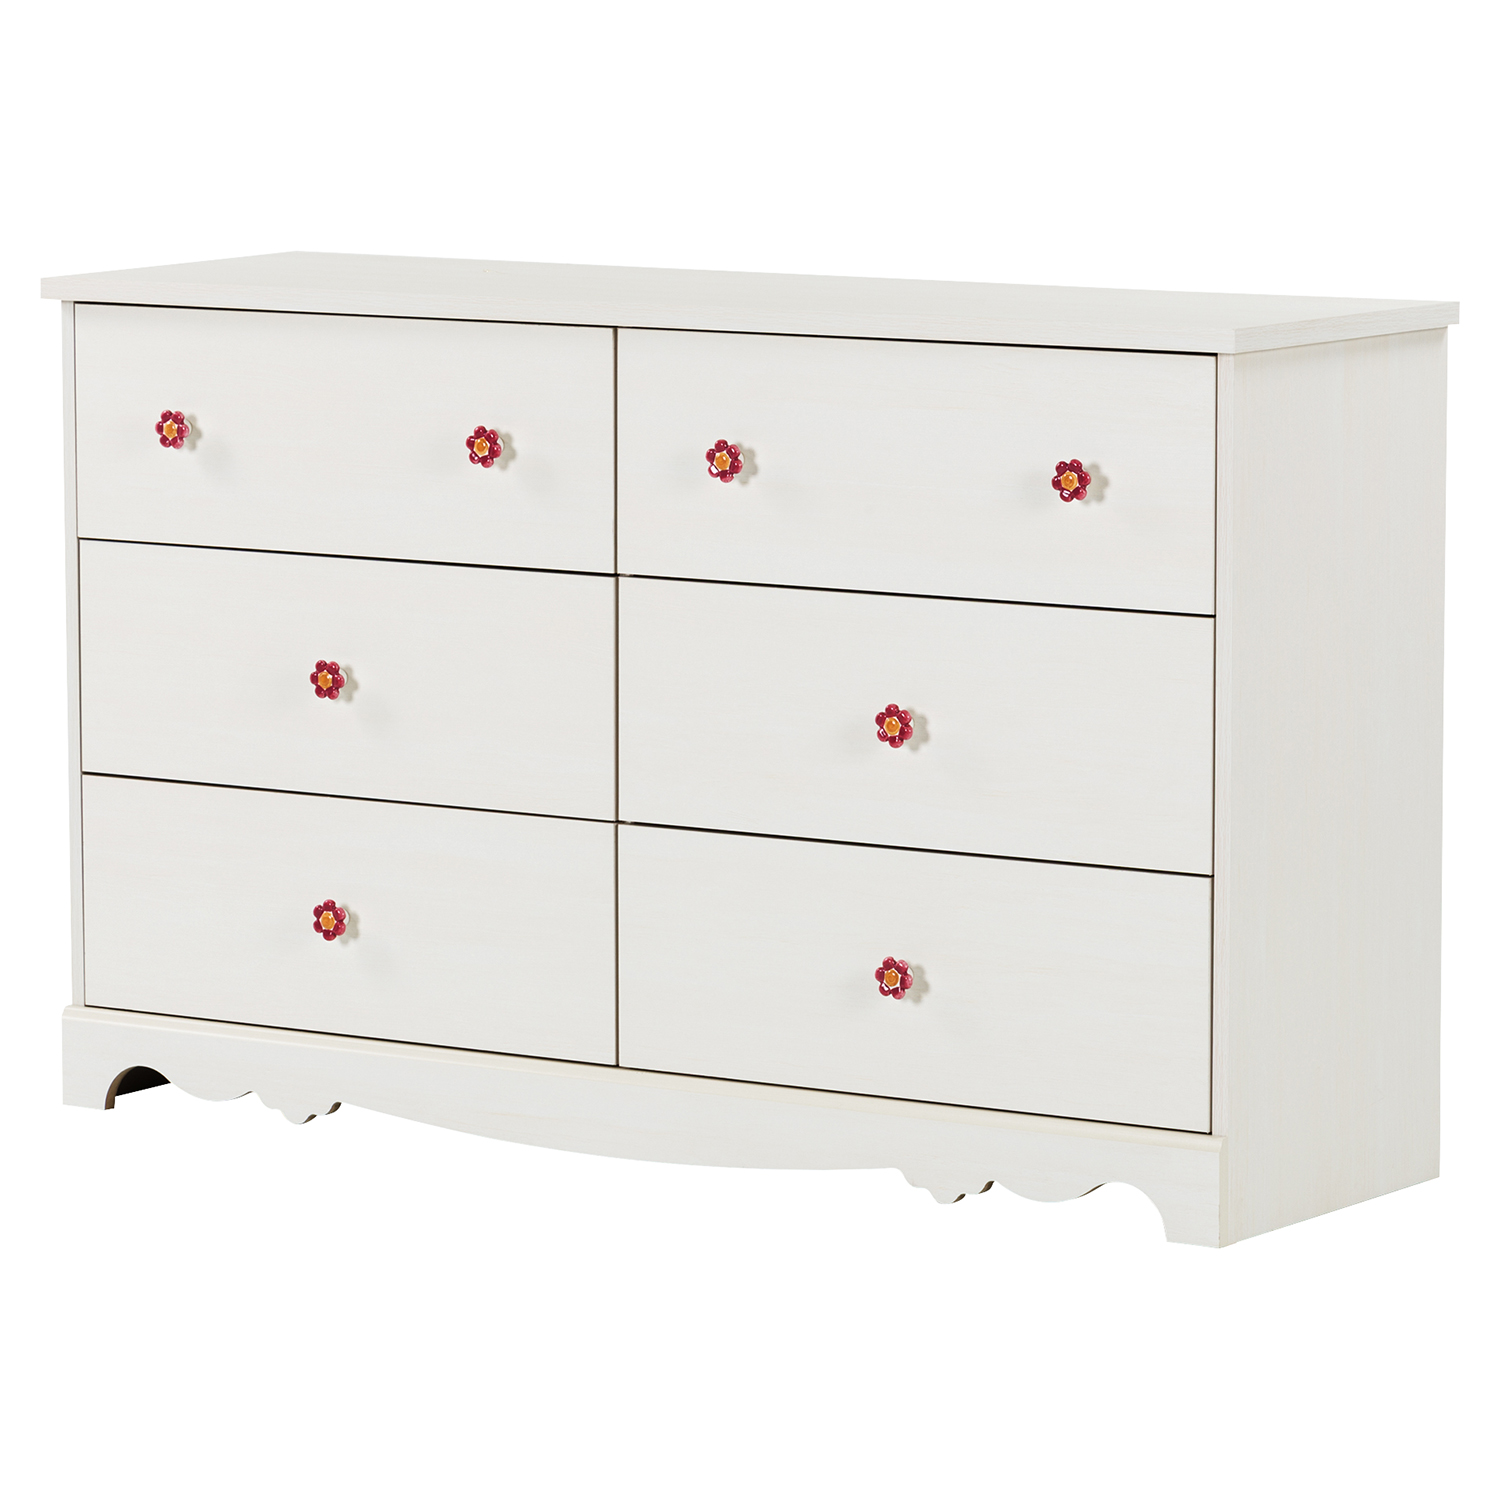 Lily Rose Double Dresser - 6 Drawers, White Wash - SS-10078